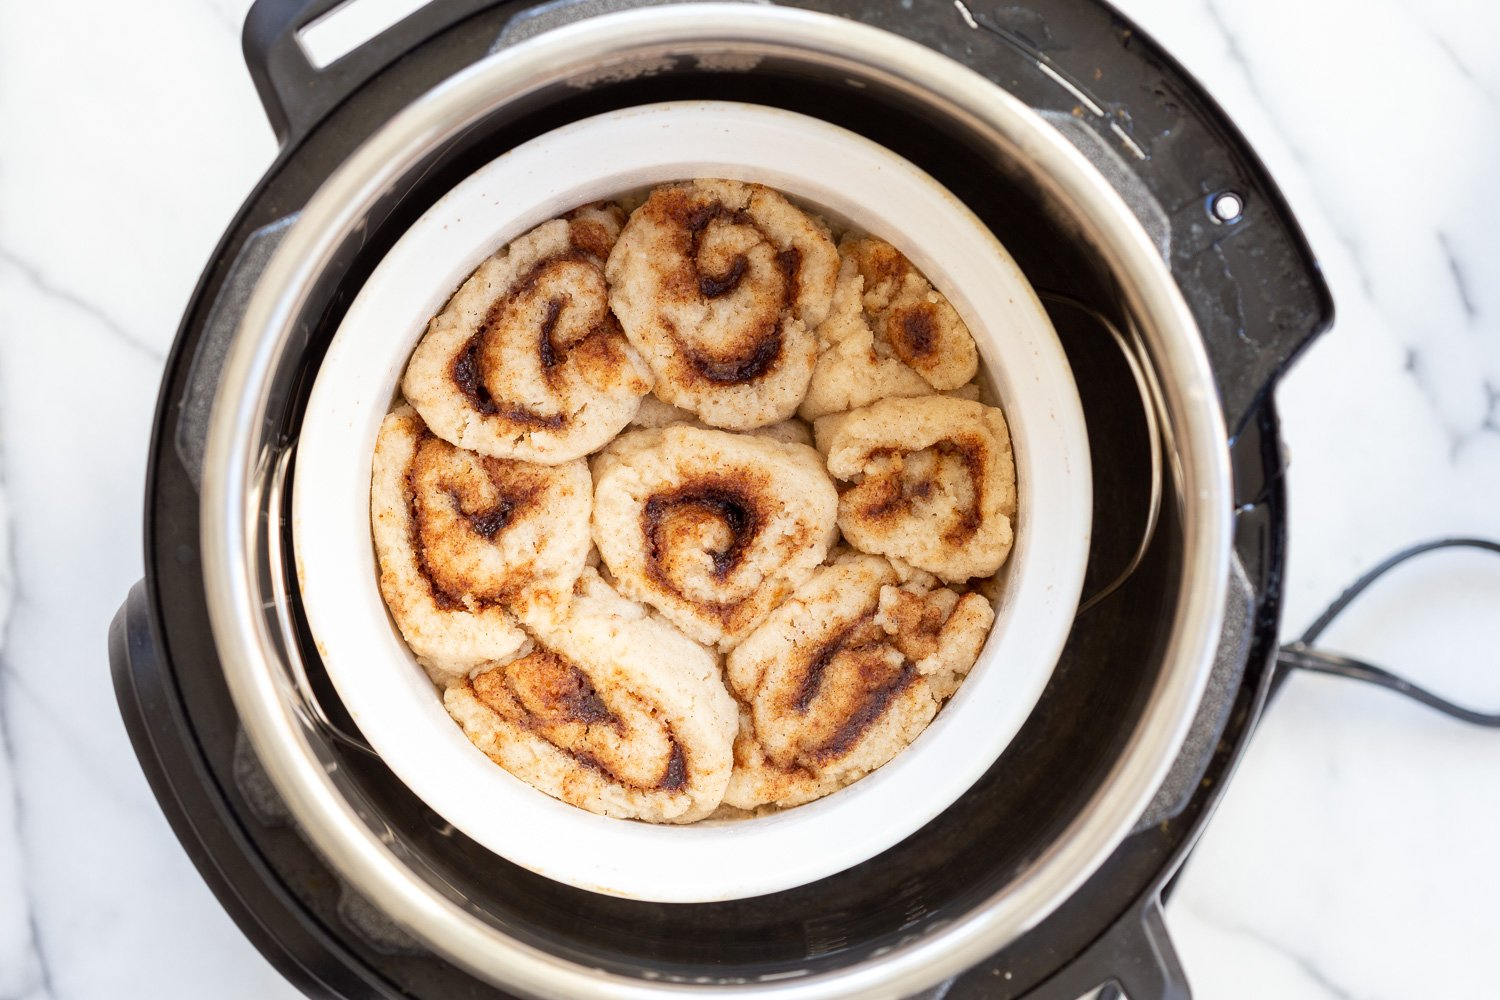 Steamed Vegan Gluten free Cinnamon Rolls in Instant Pot preessure cooker